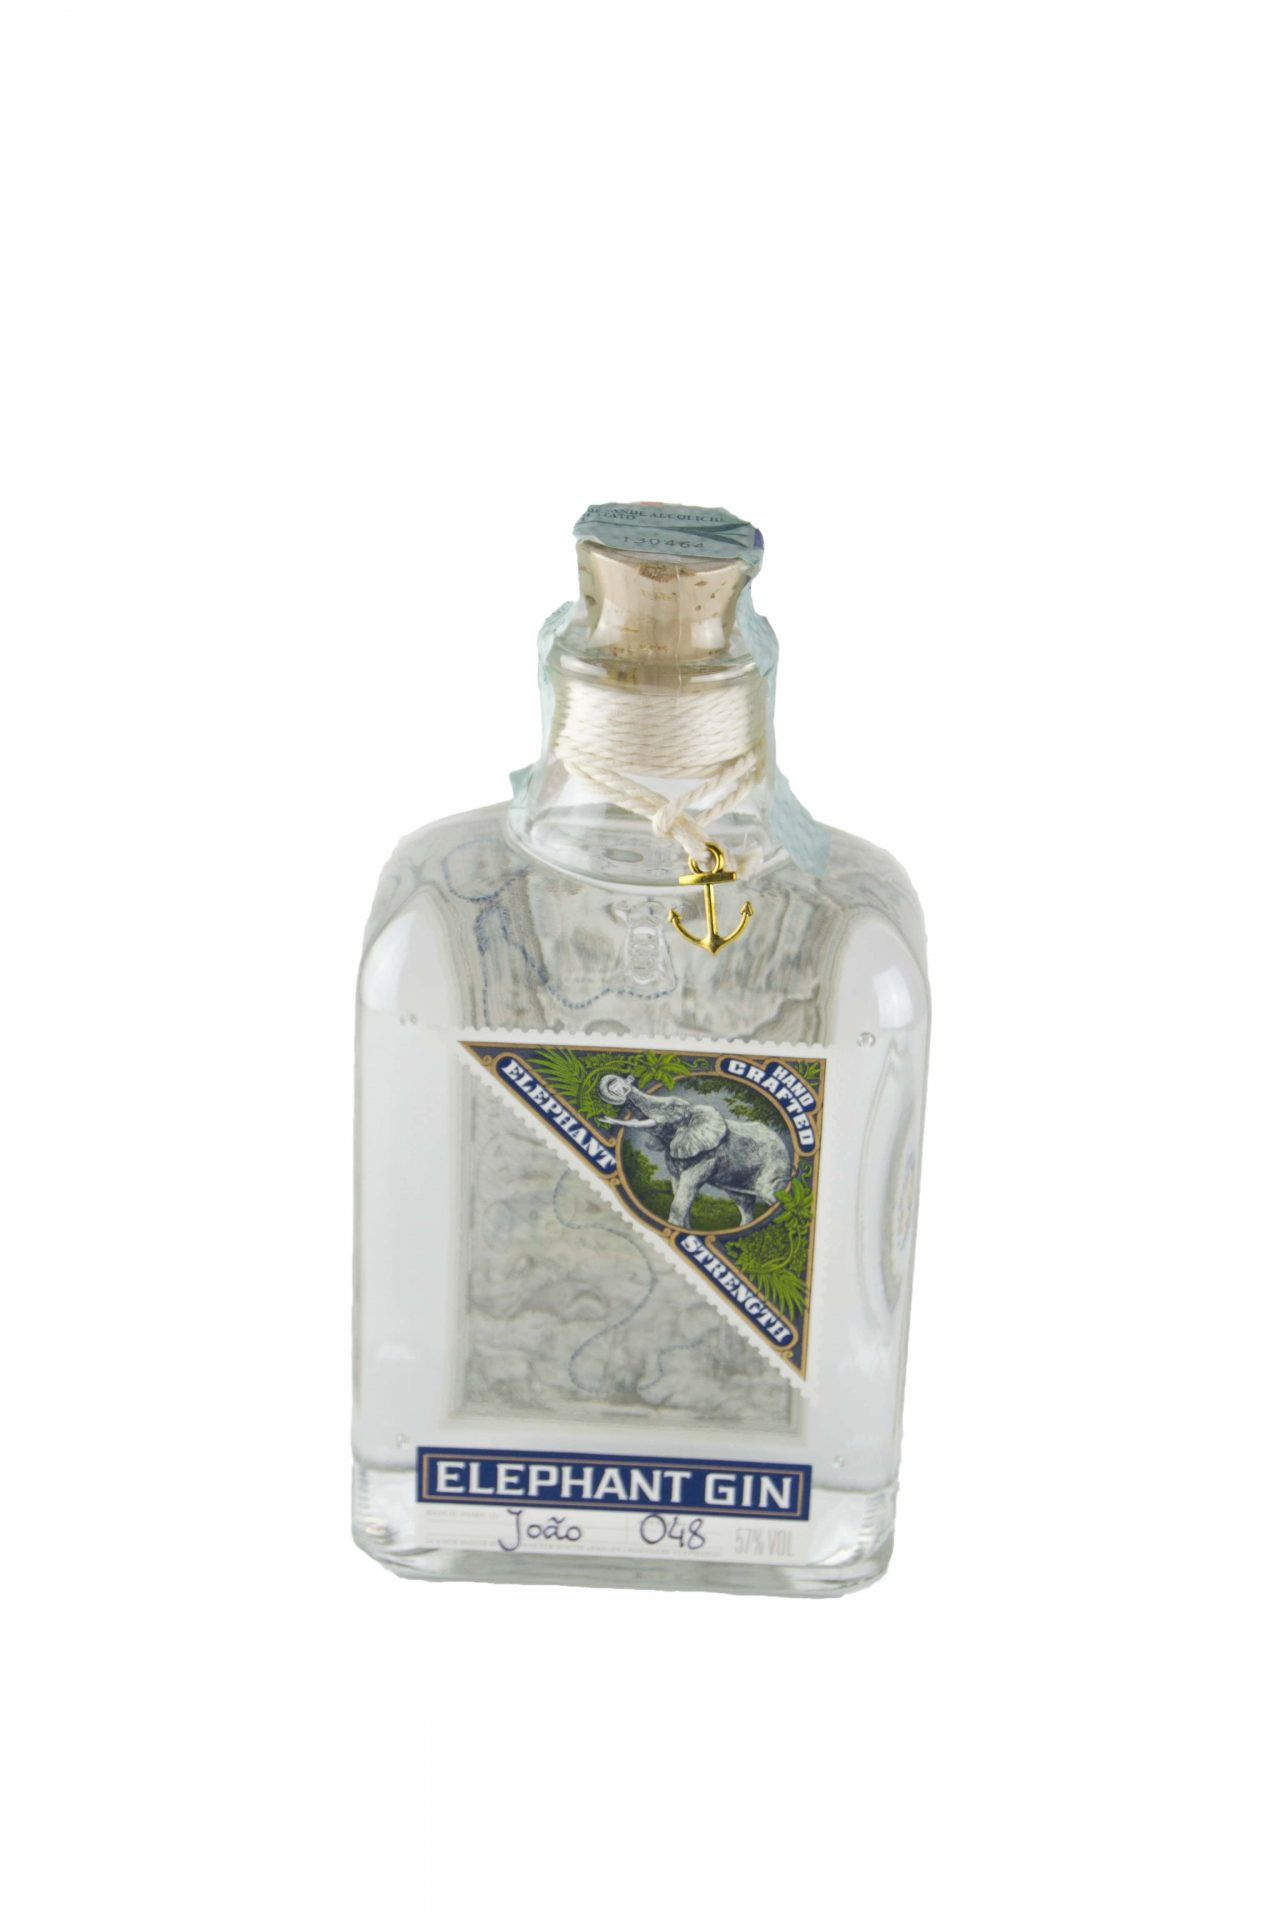 Elephant Navy Strength – Elephant Gin